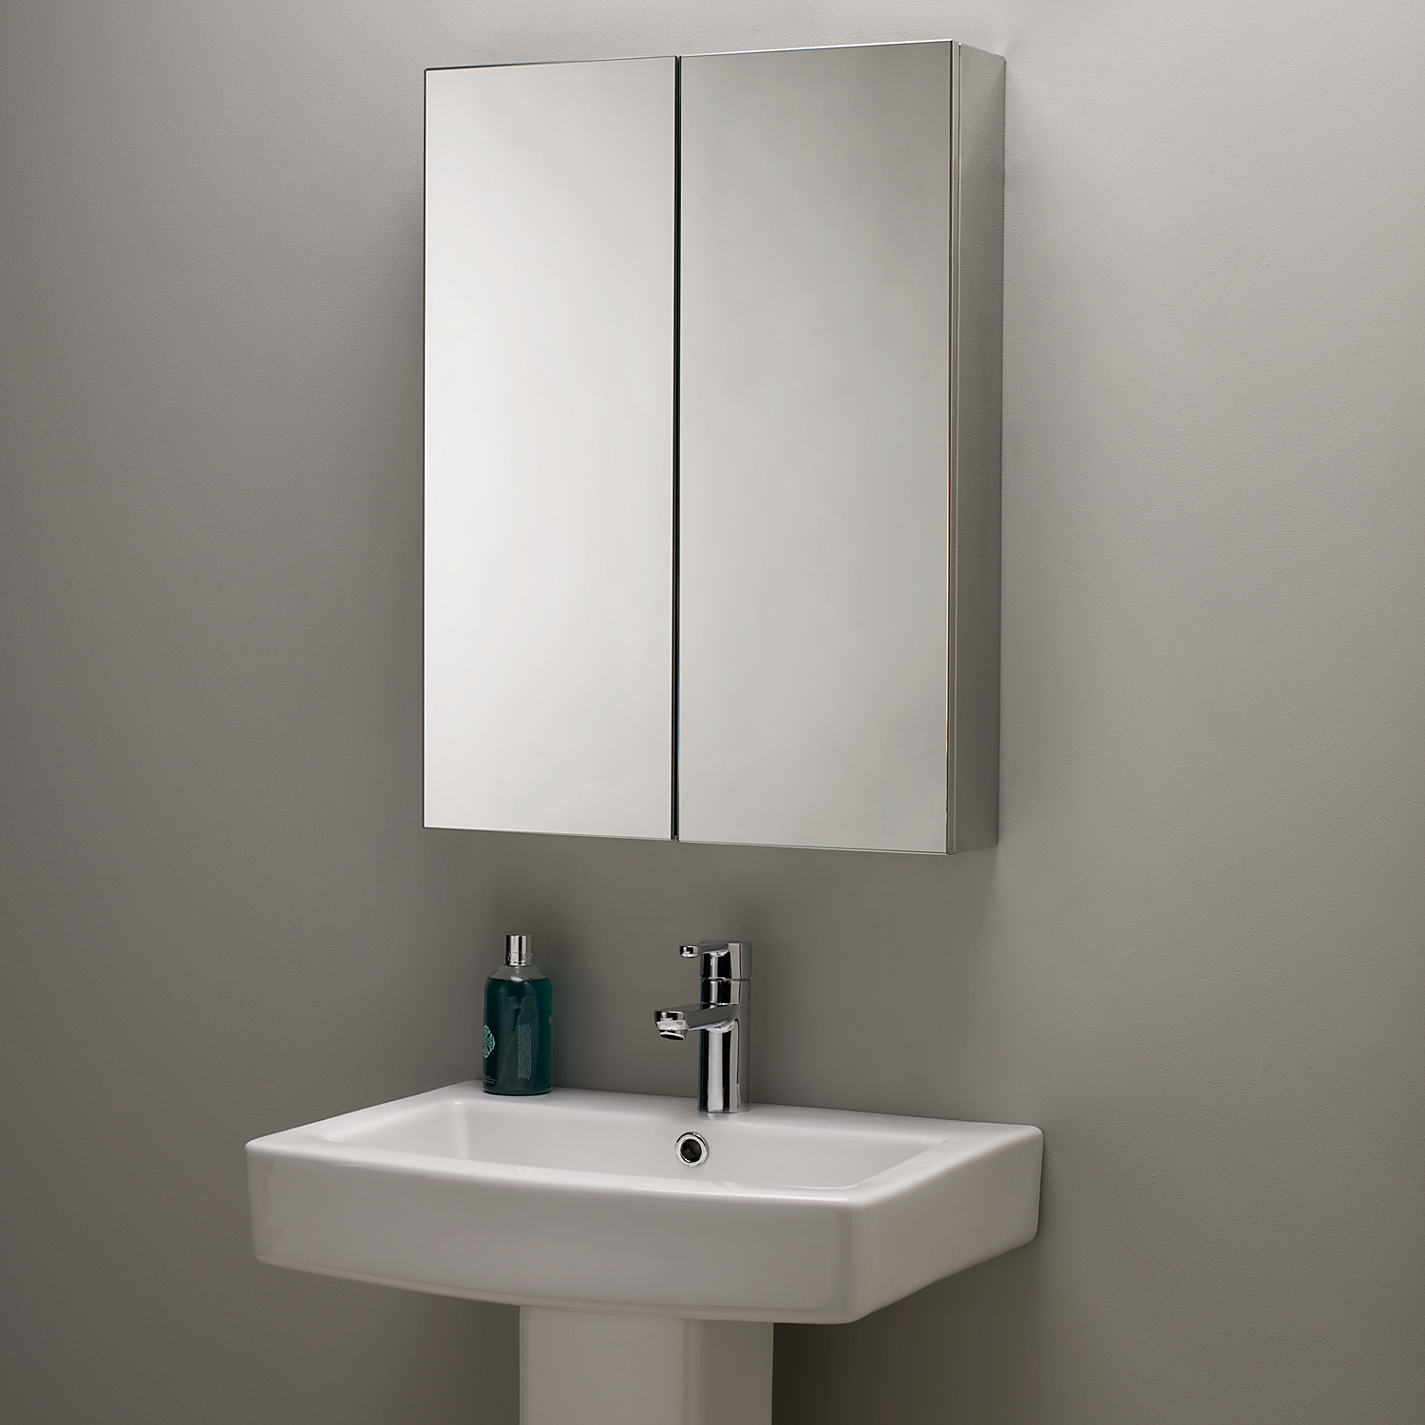 Design House Bathroom Wall Cabinets : Mirrored bathroom wall cabinets uk imanisr